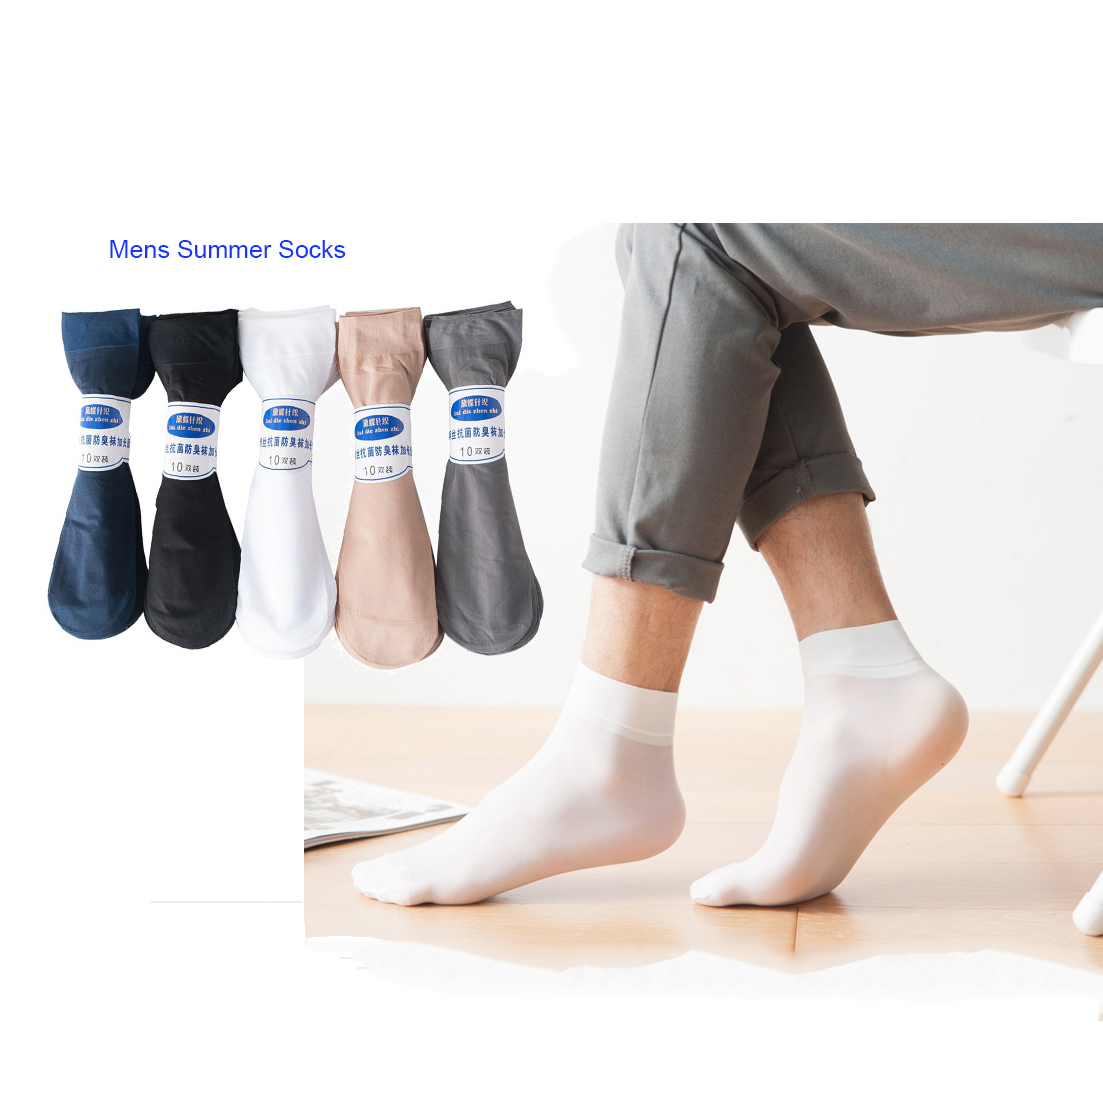 10 pairs/lot mens socks brand new mens socks Rayon business dress summer solid colored black white short crew socks